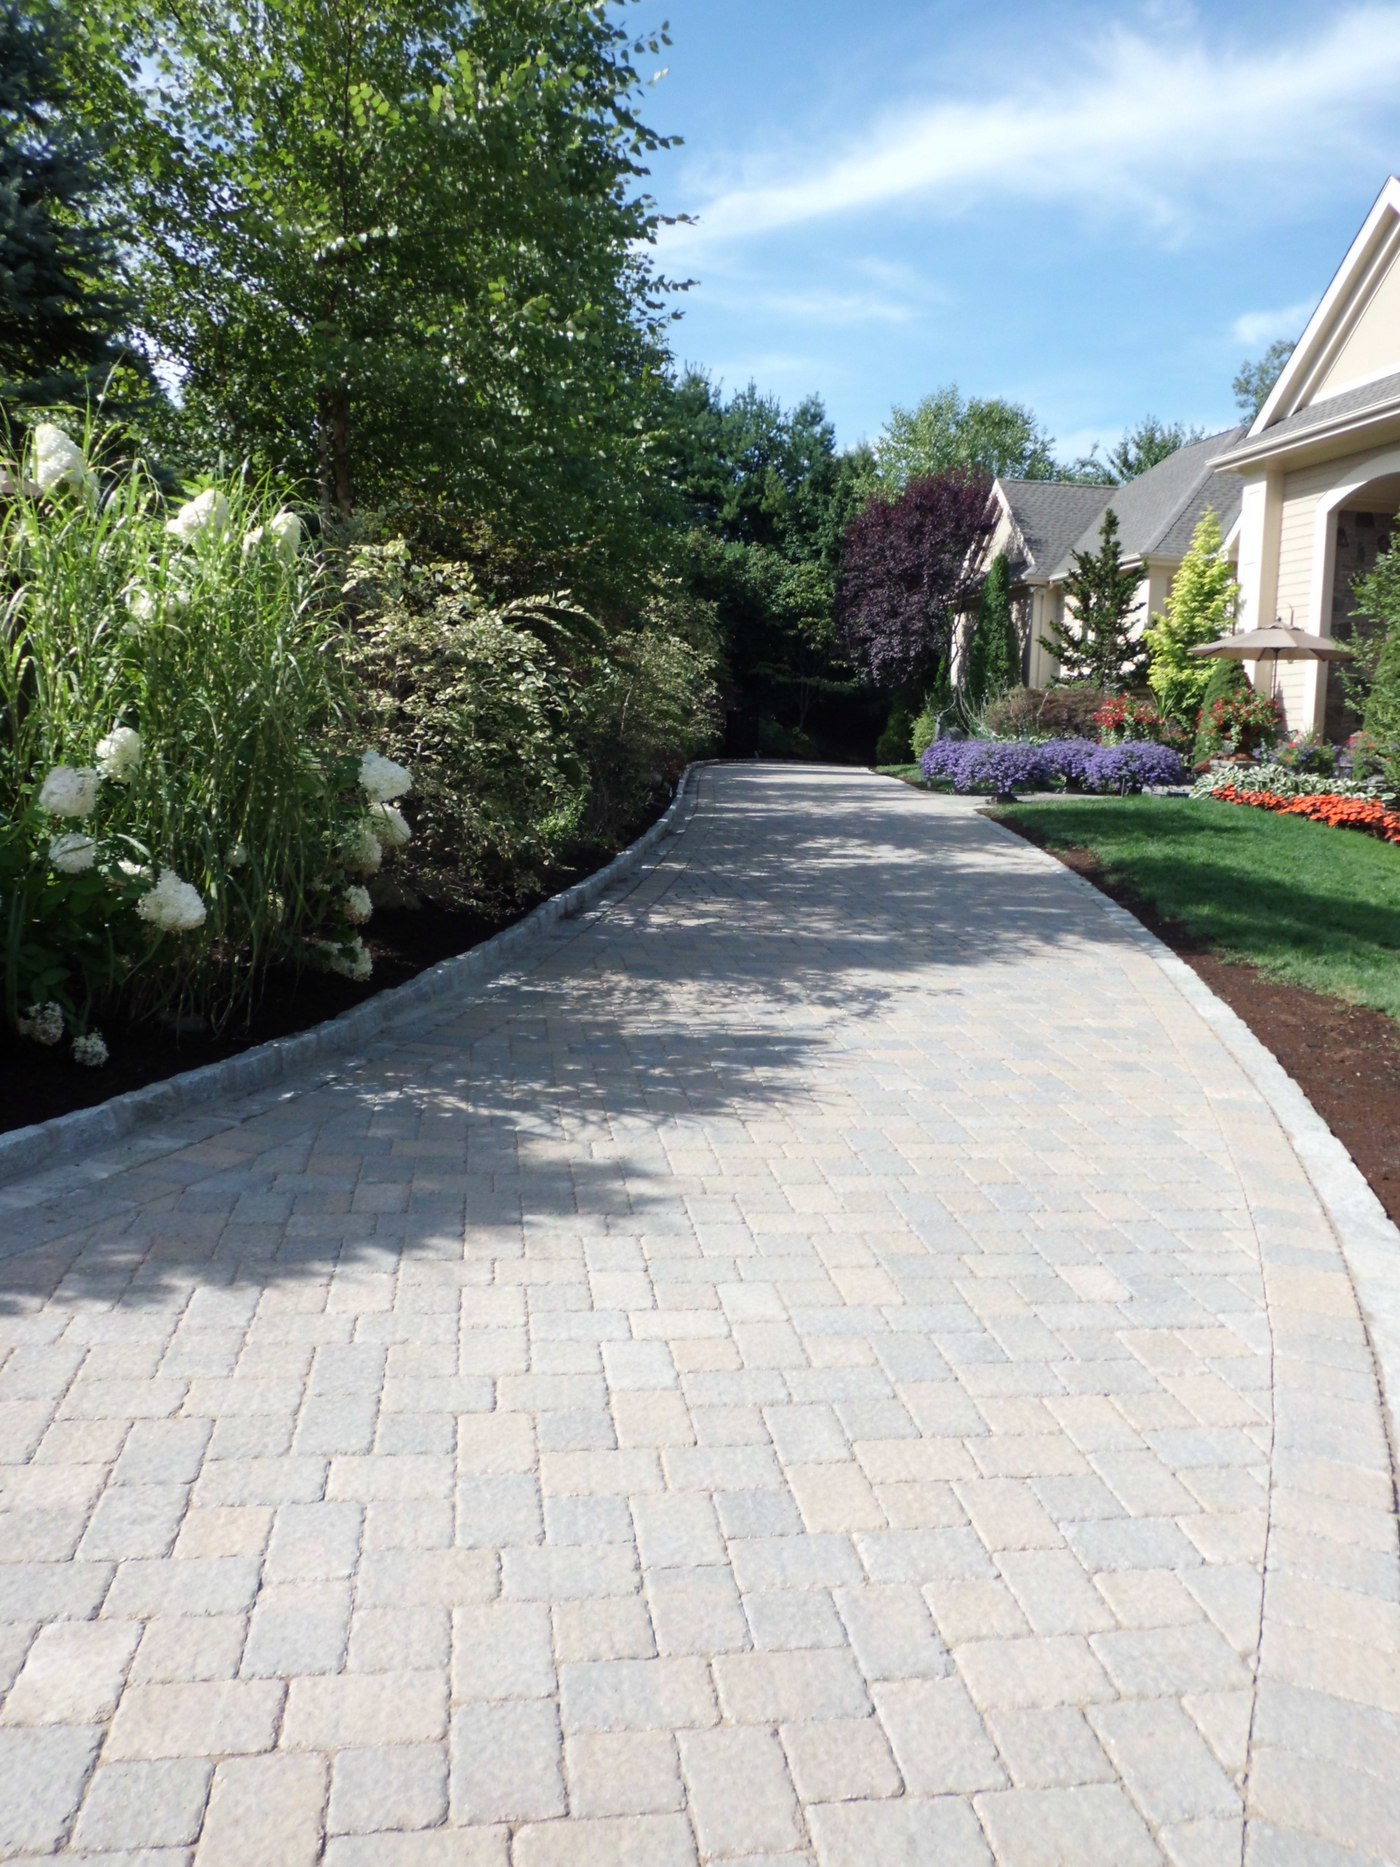 Landscaping Complements a Paver Driveway